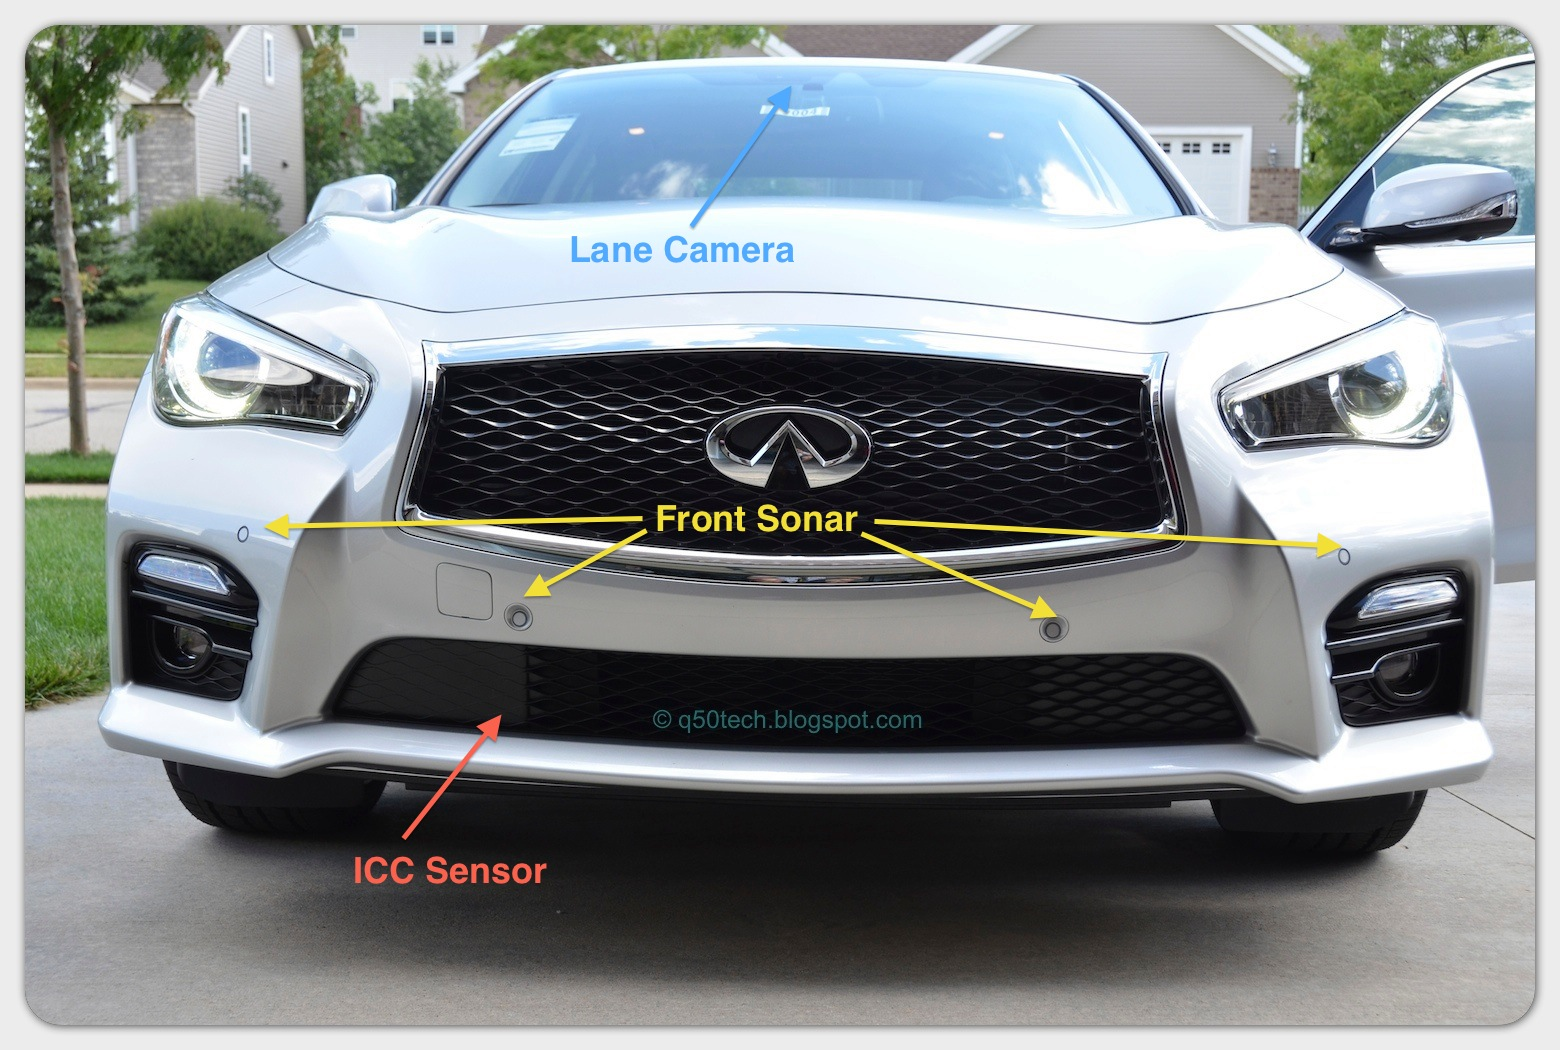 2015 Infiniti Q50 Wiring Diagram Library Technical Operational Blog Safety Driver Aids In Front Sensors